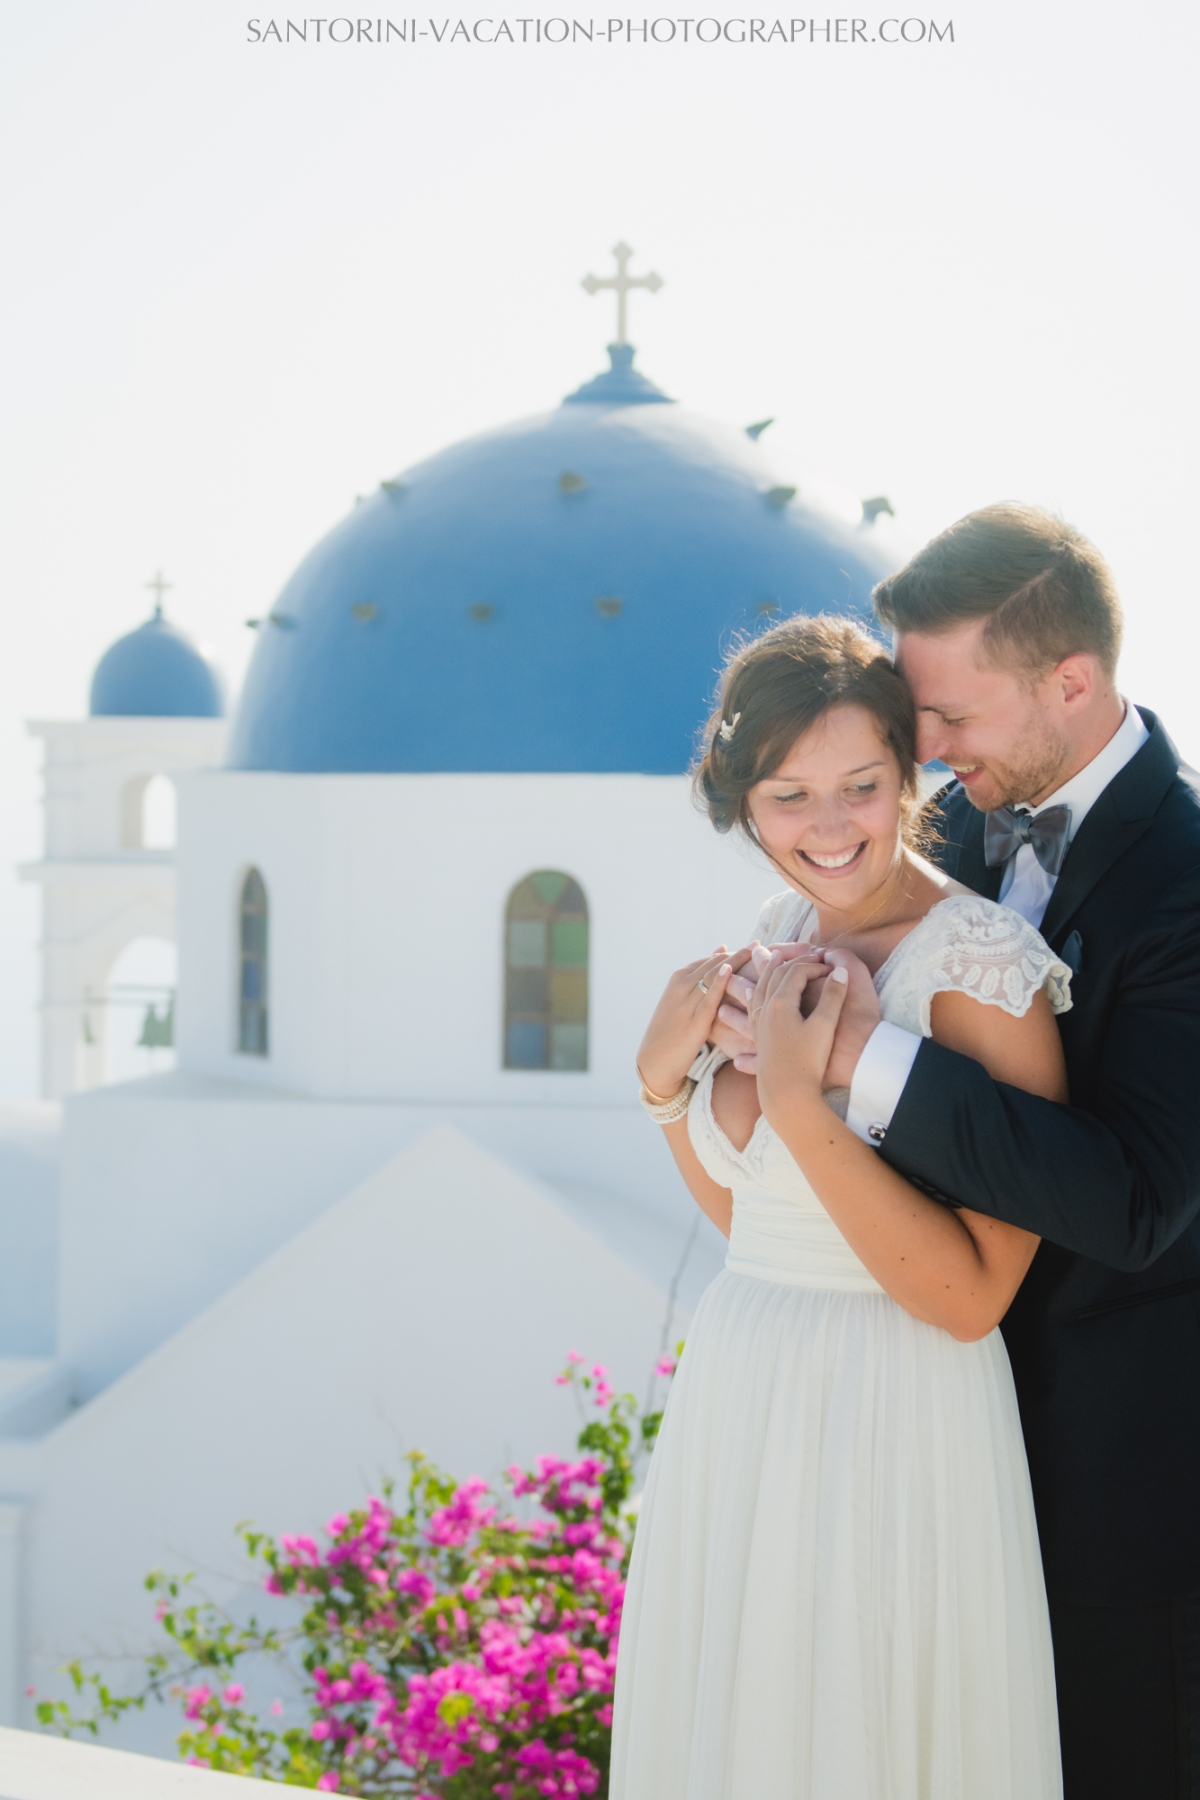 photo-shoot-santorini-blue-domes-post-wedding-destination-2